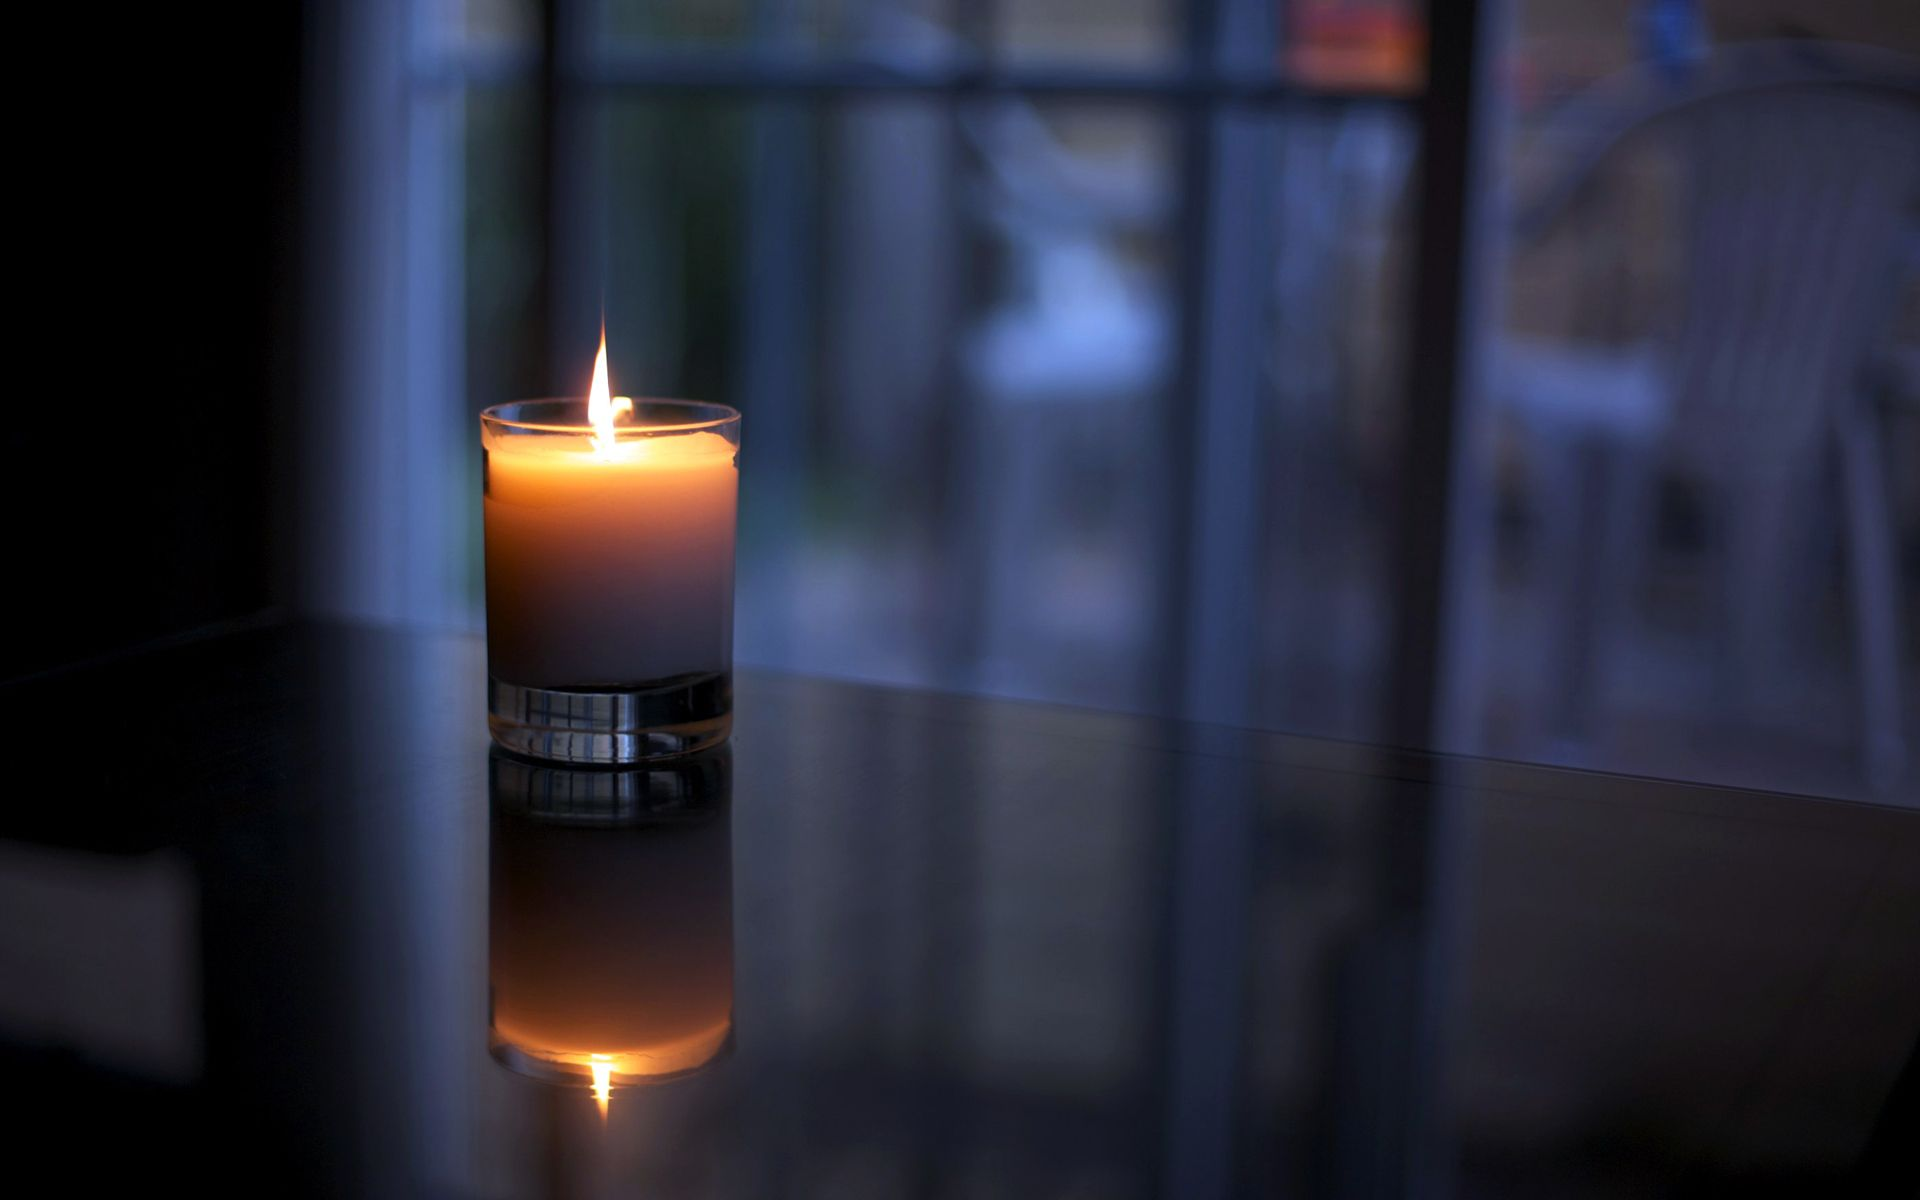 Sometime Its Really Matter In Your Life Meaning Full Candles Wallpaper Candle Images Candles